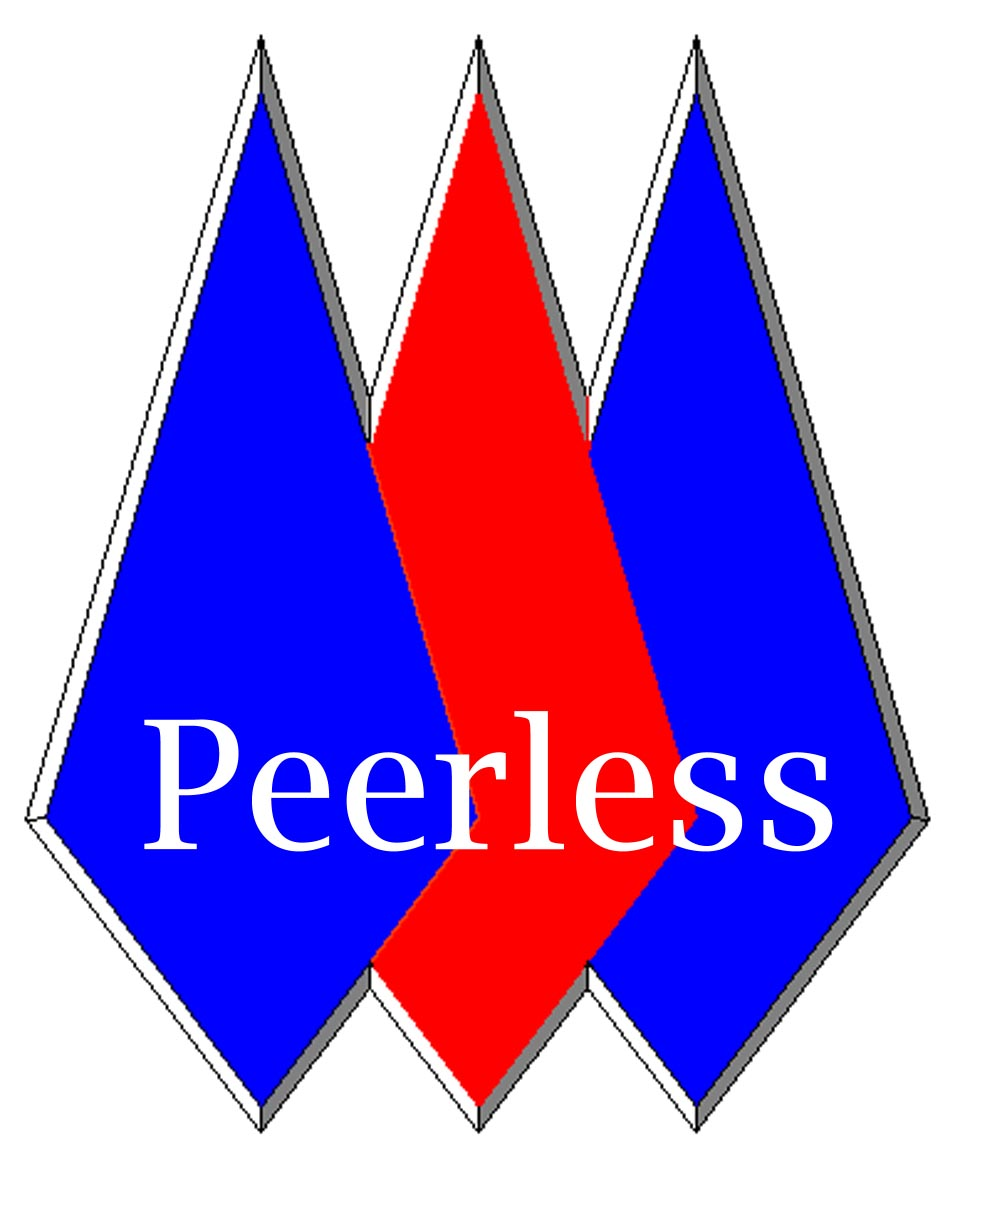 Peerless Industrial Equipment in Oshkosh, WI. Manufacturer & distributor of custom & engineered metal cutting machinery & systems, including band & power hack saws, structural & radial arm drills, plate processing, shears, press brakes, band saw blades & cutting fluids.